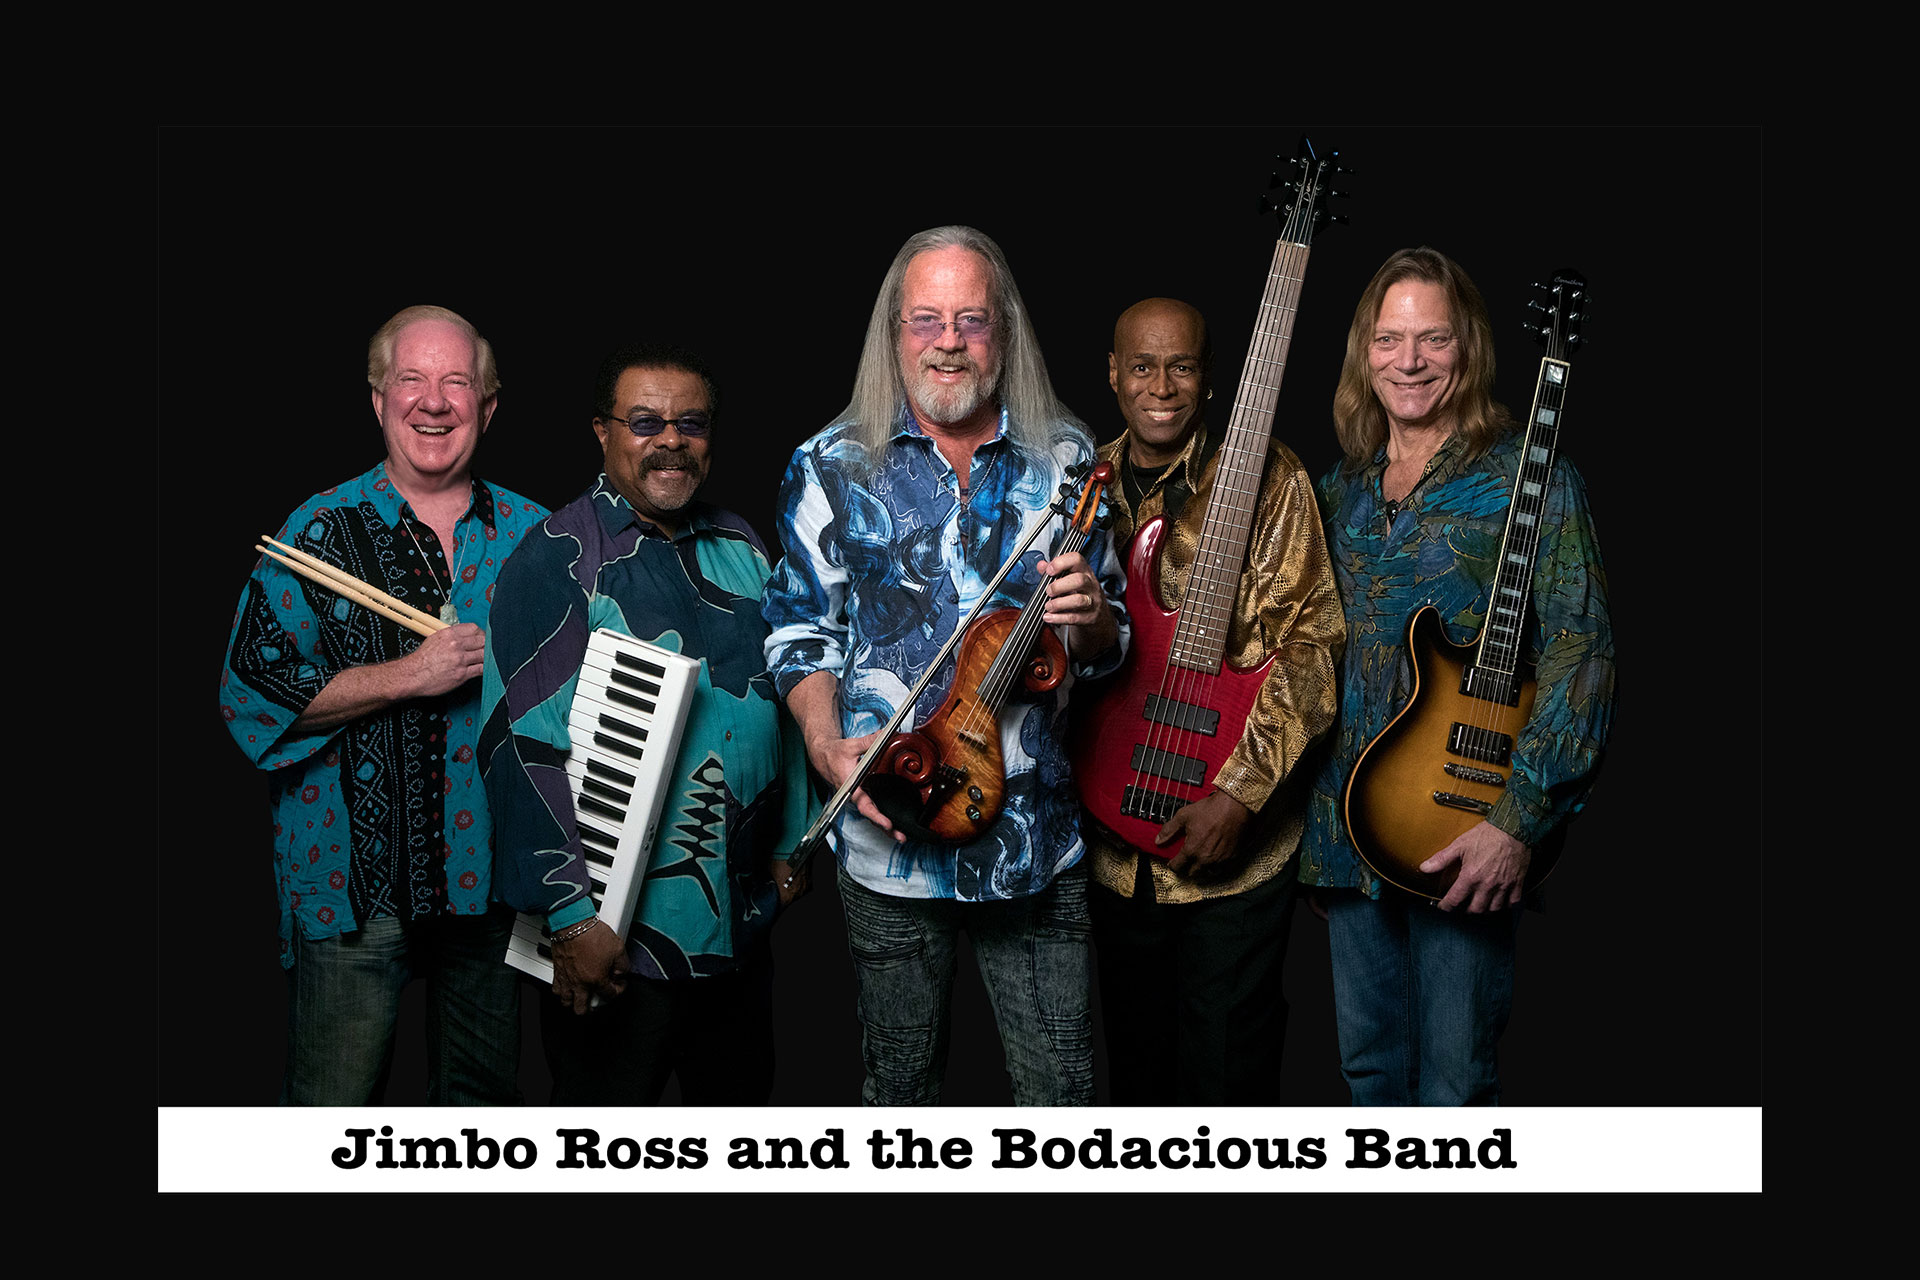 Jimbo Ross and the Bodacious Band